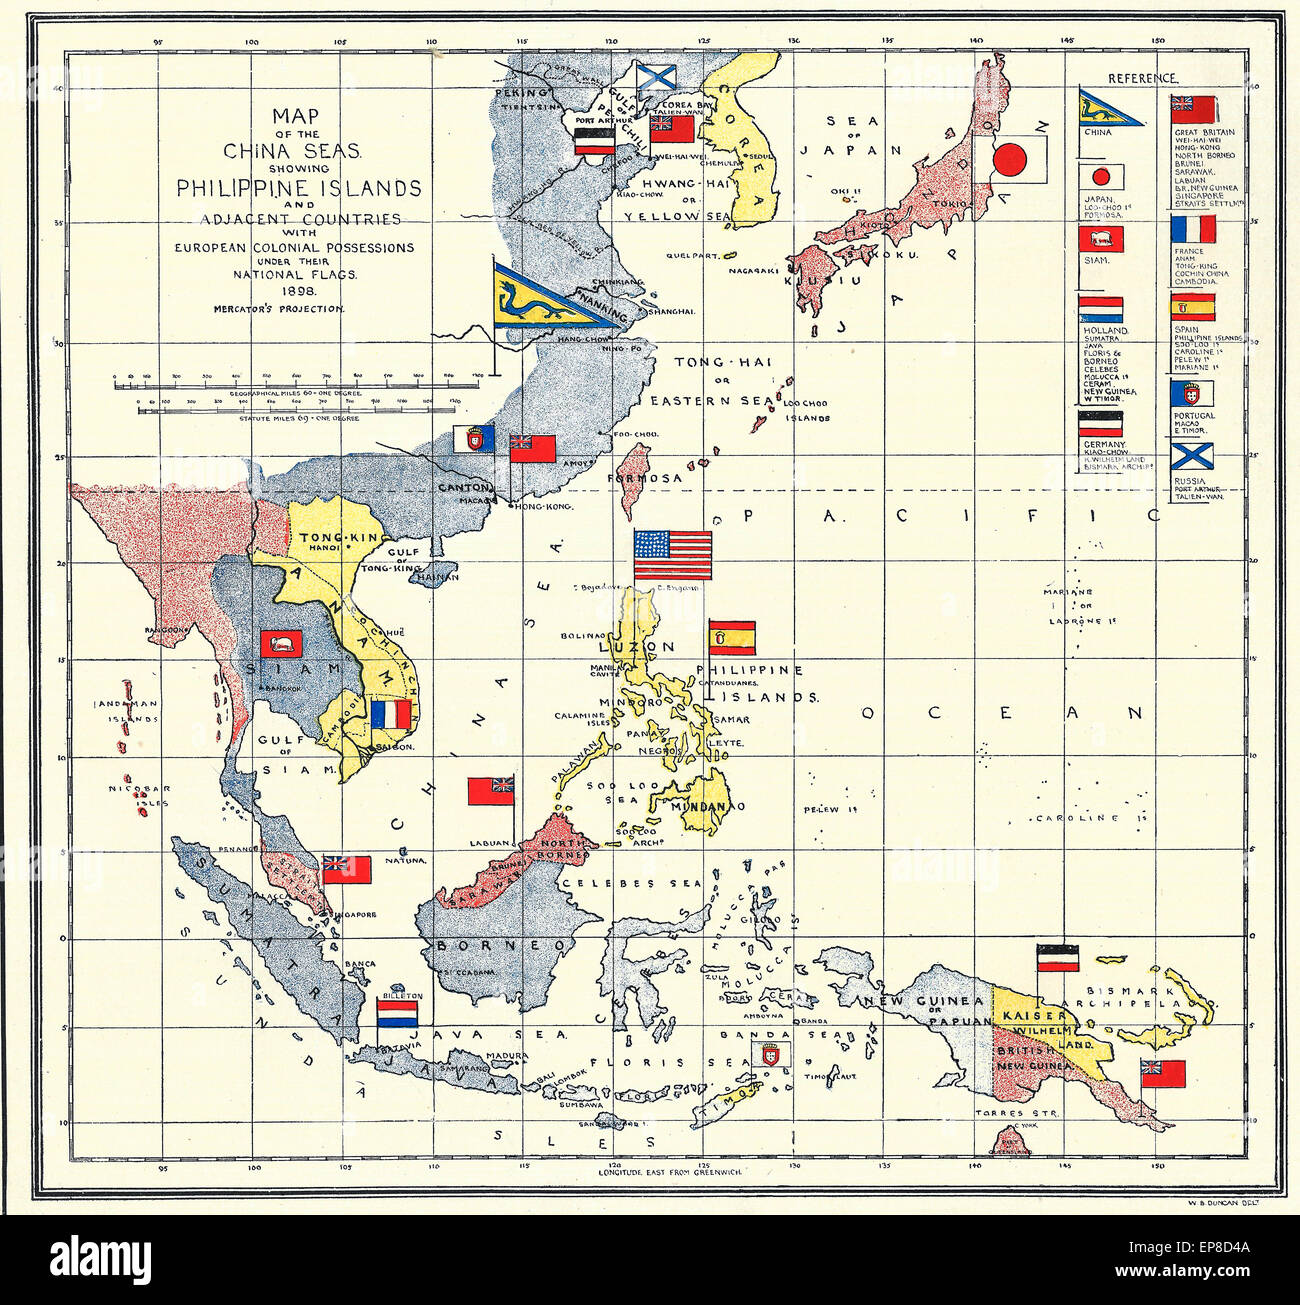 Spanish American War Philippines Map.Map Of The China Seas And Philippine Islands At The Time Of The